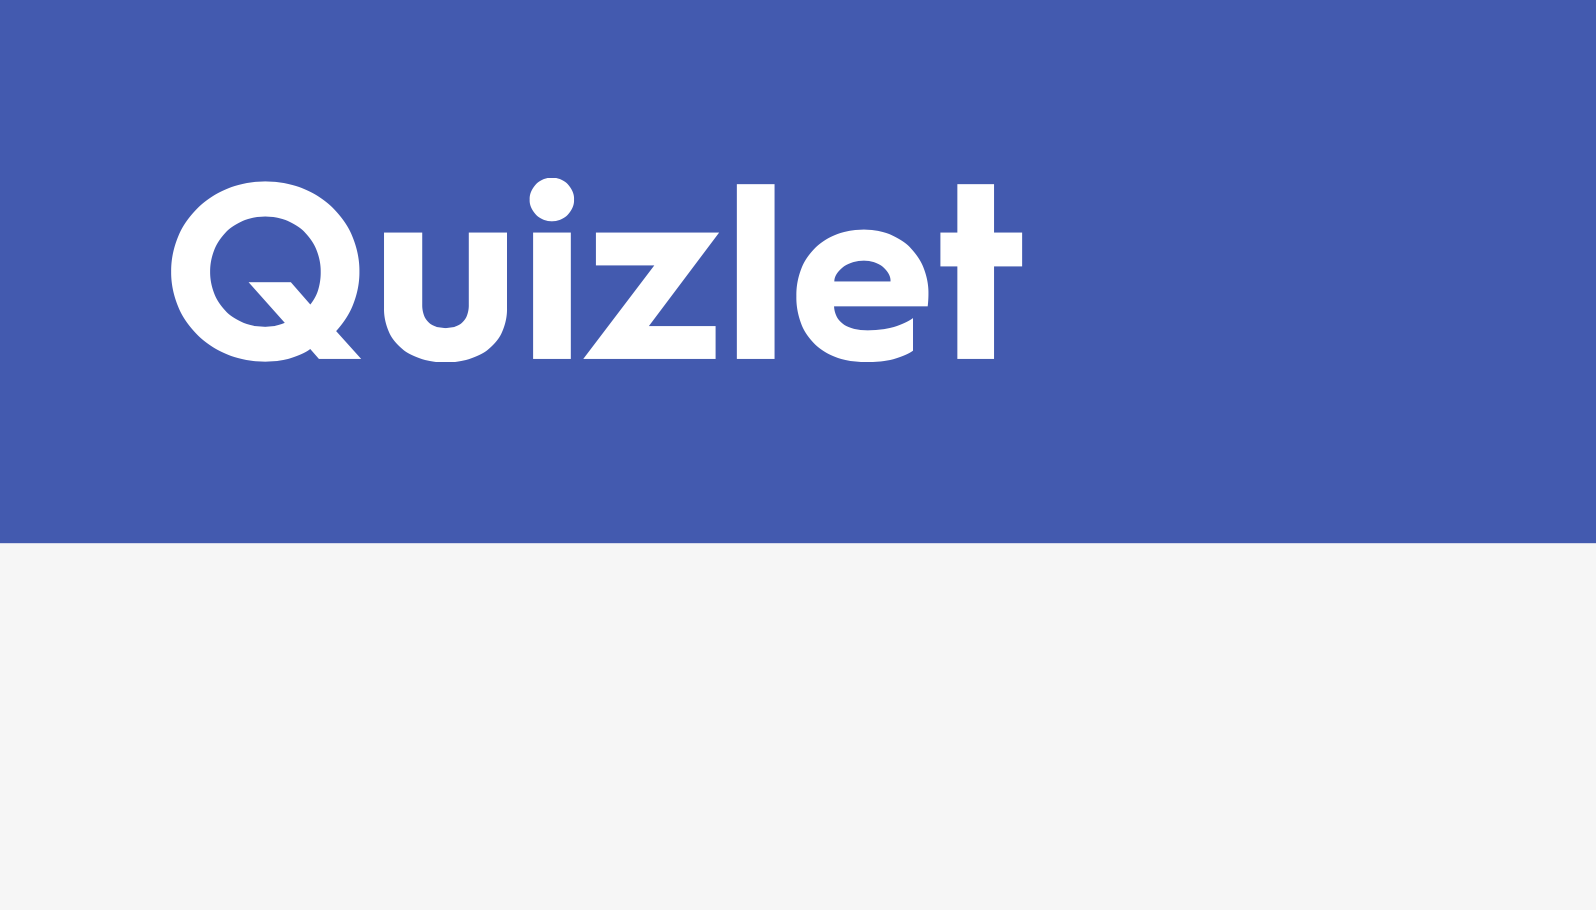 Students involved in cheating scheme using Quizlet | TCU 360